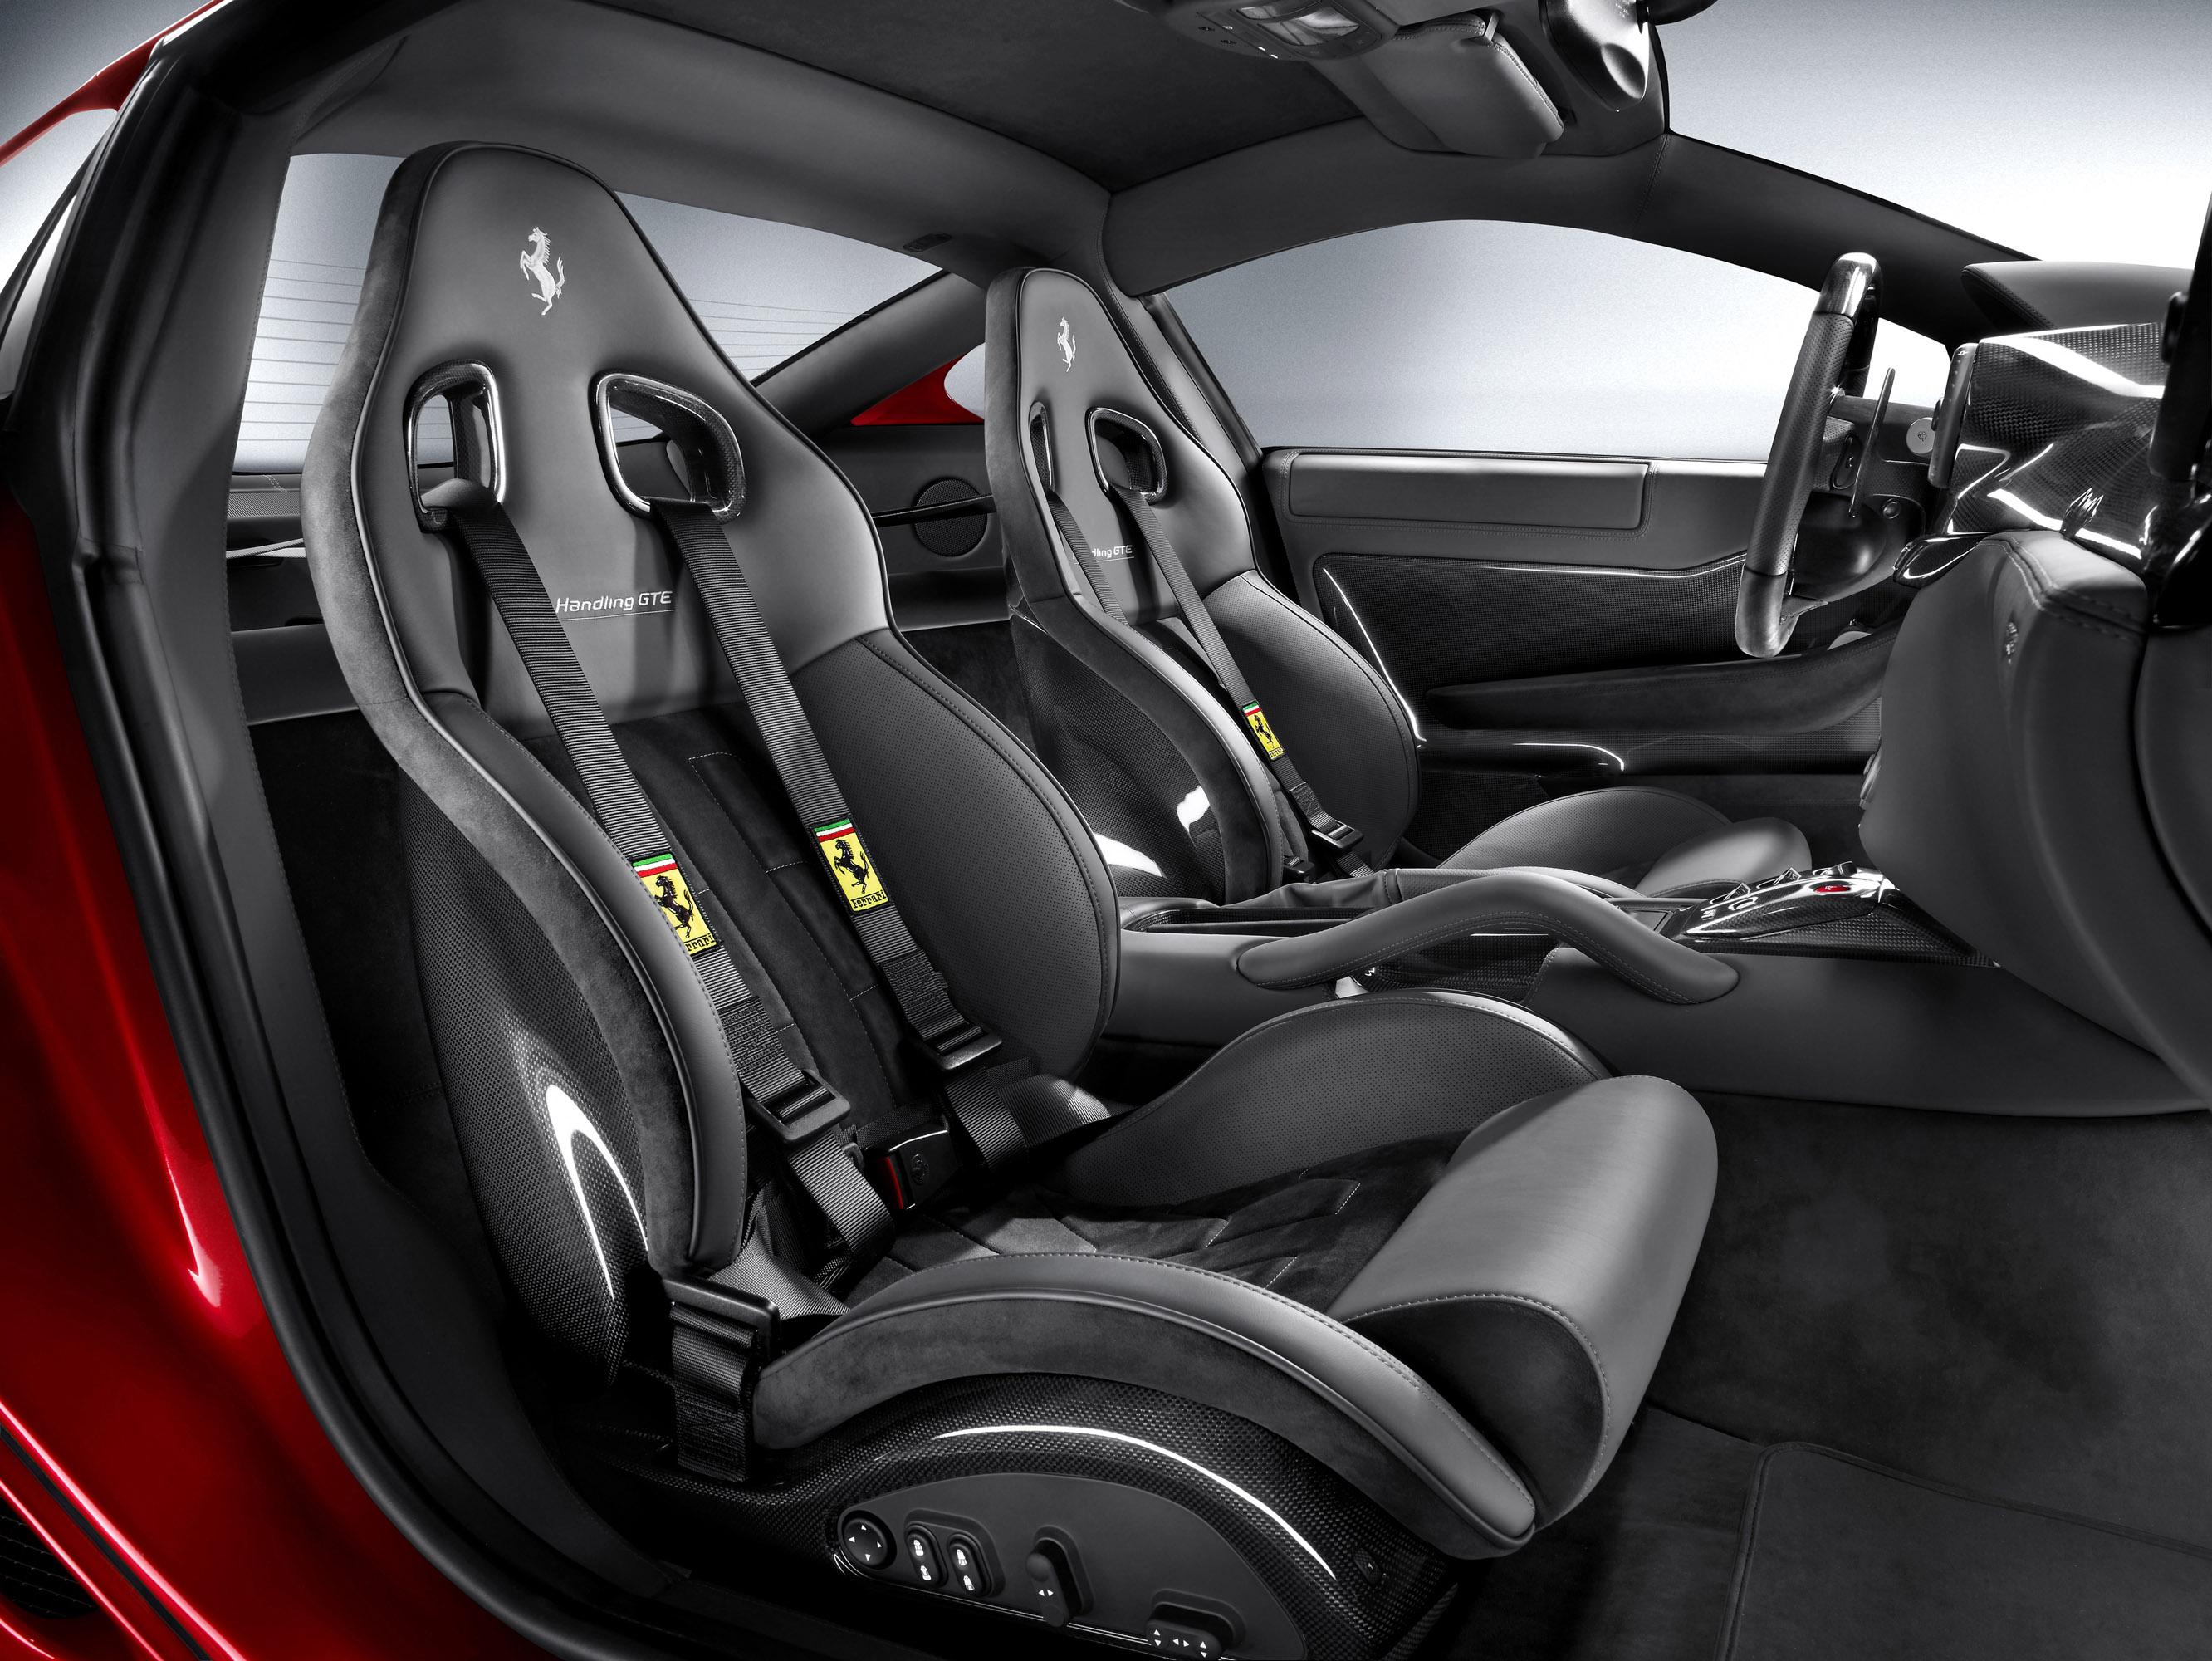 ferrari 599 gtb fiorano review and photos. Black Bedroom Furniture Sets. Home Design Ideas